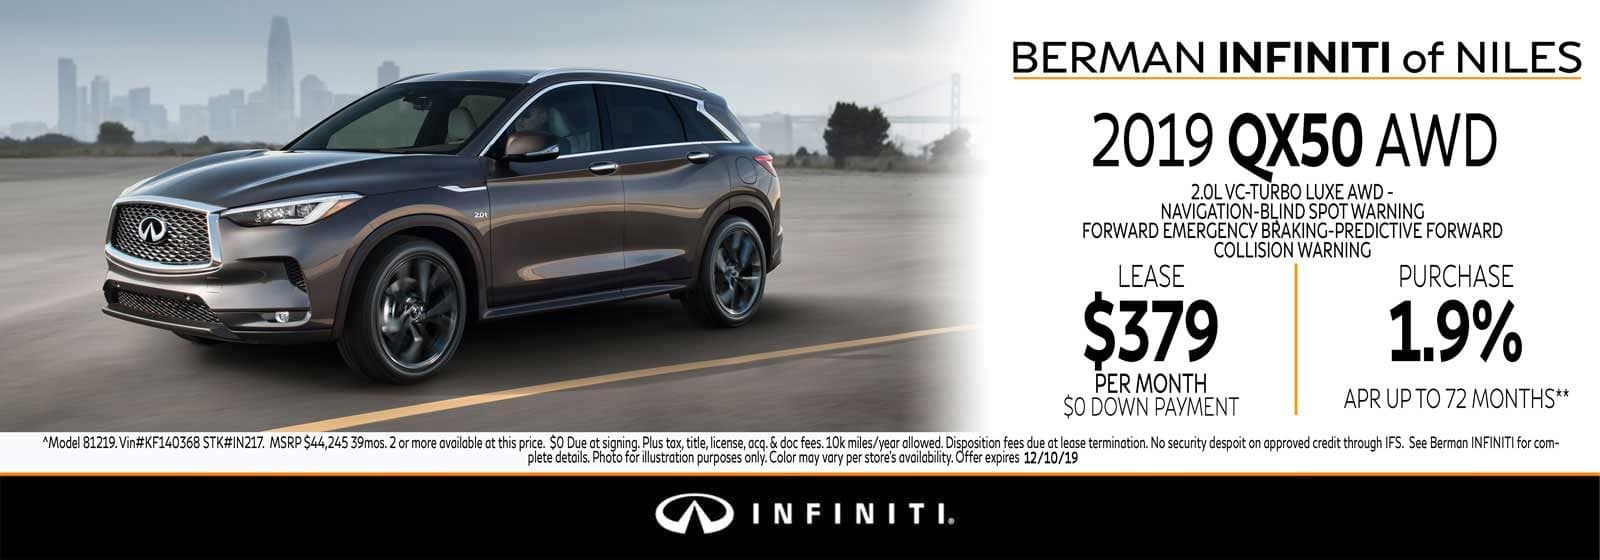 New 2019 INFINITI QX50 November Offer at Berman INFINITI of Niles!